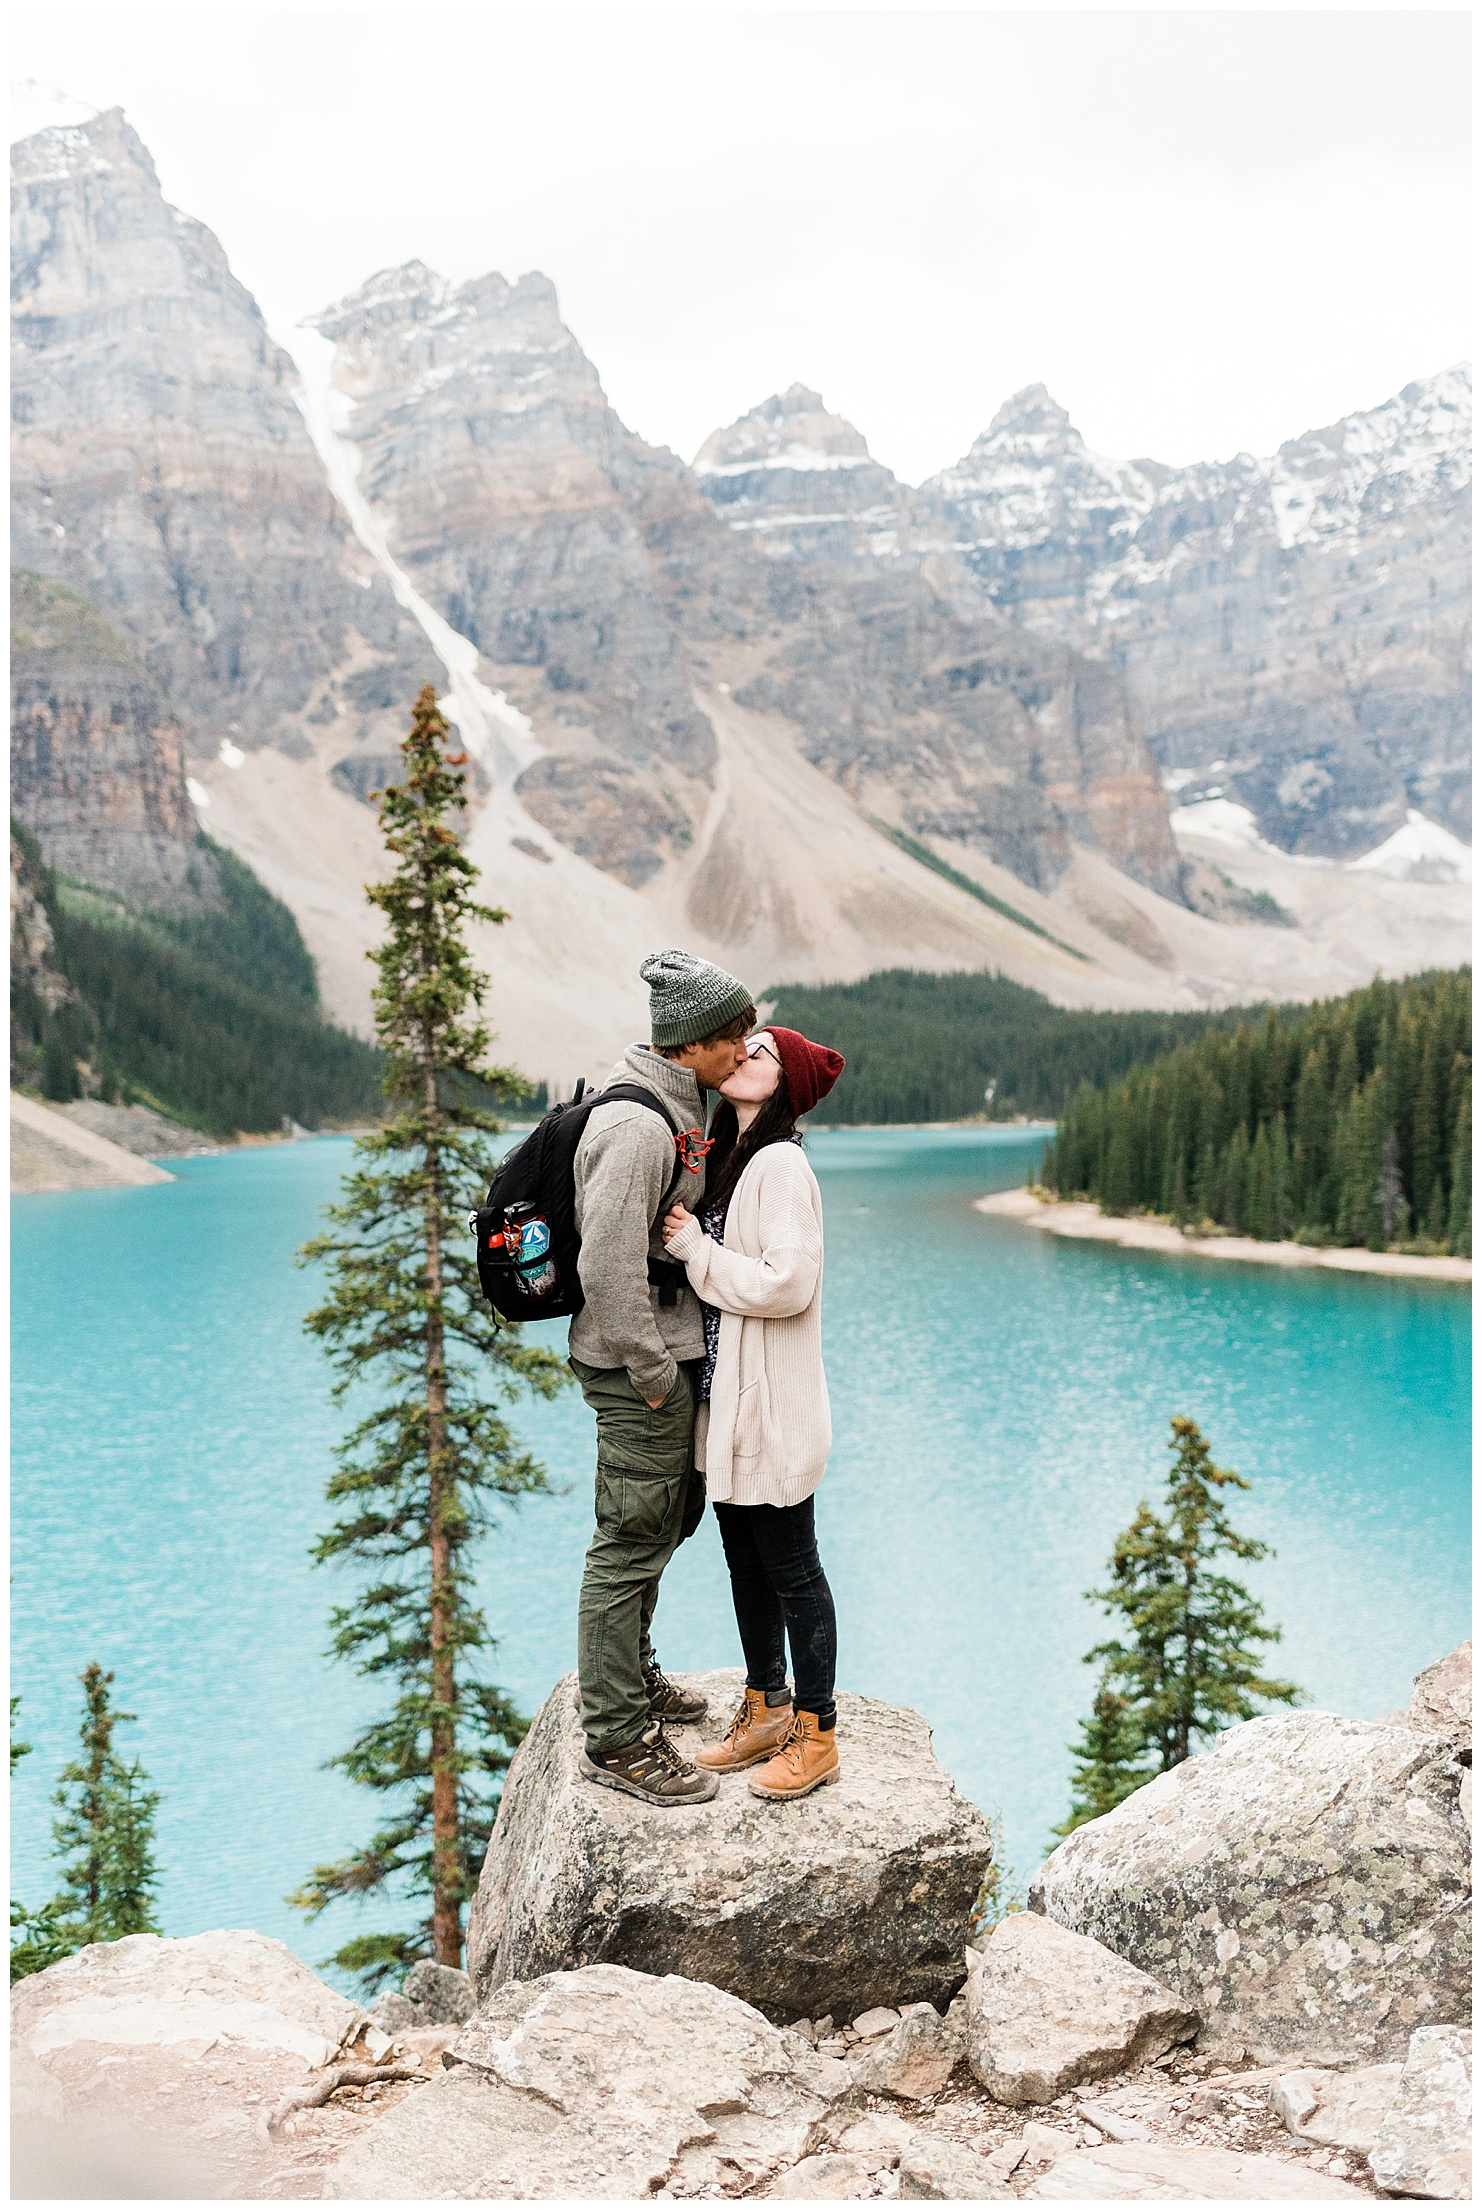 Laura & Devon of Forthright Photo, adventurous wedding photographers, at Lake Moraine in Banff National Park